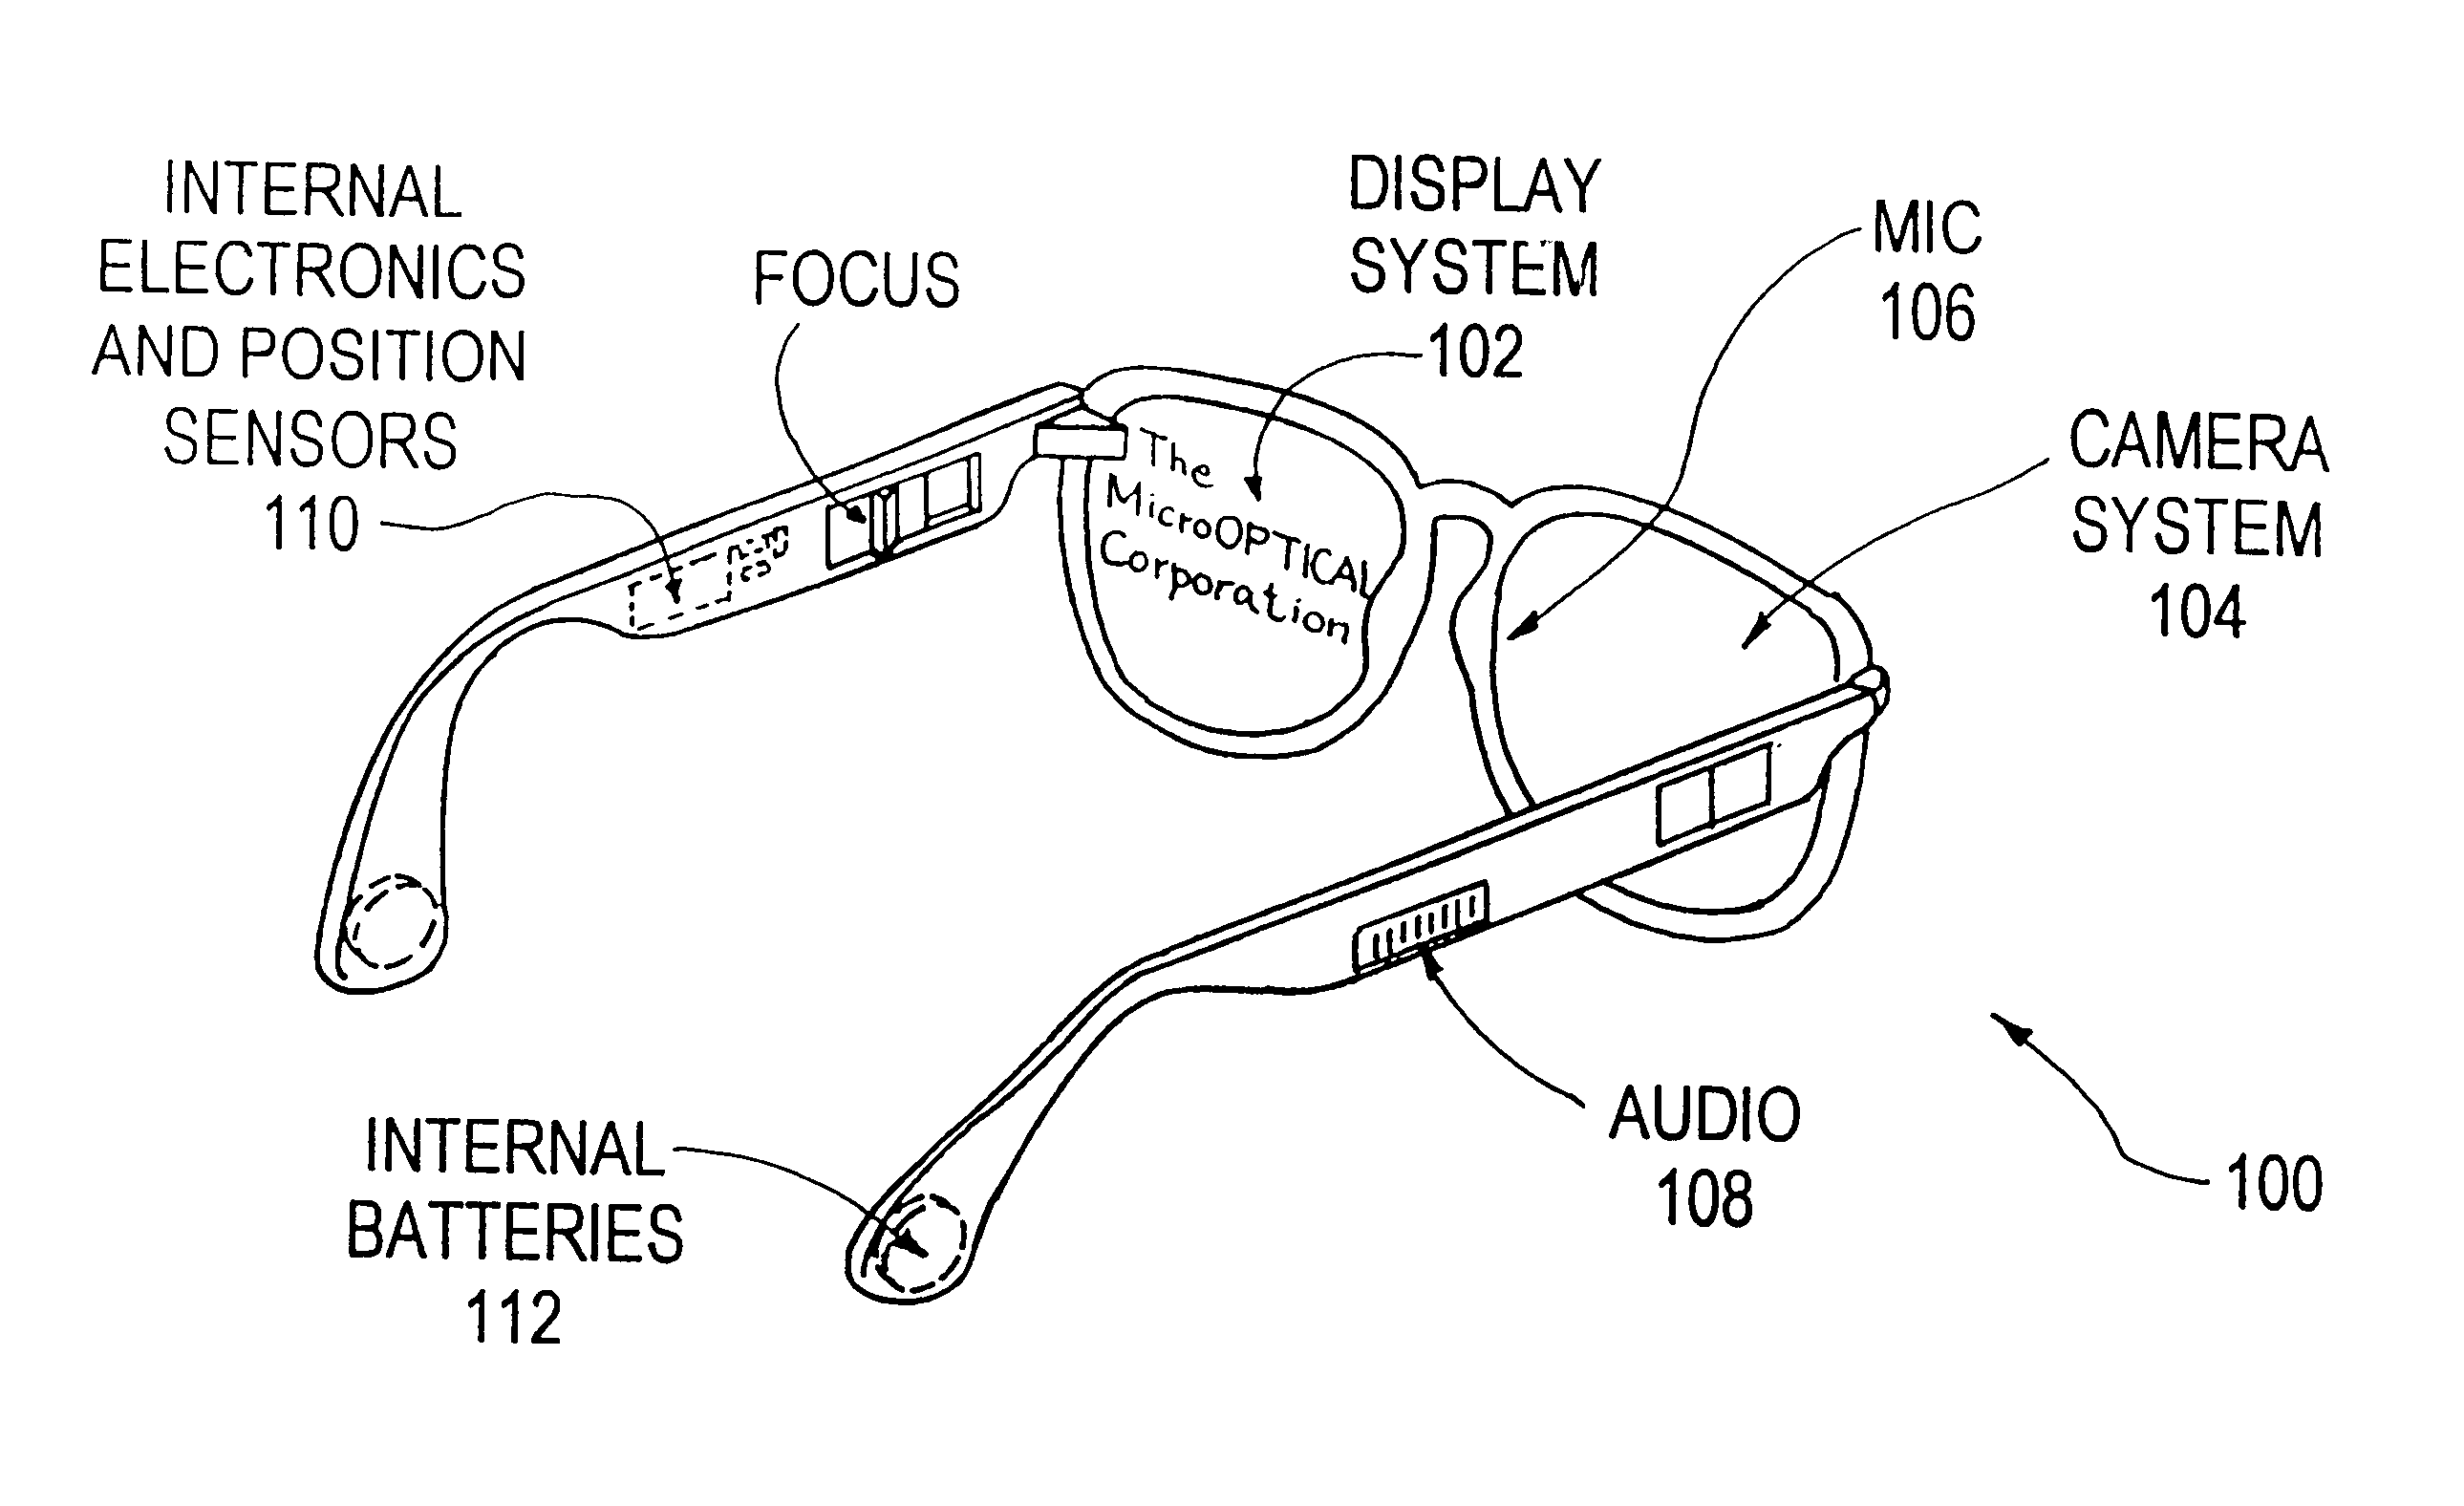 Eyeglass Frame Parts Diagram : Patent US6349001 - Eyeglass interface system - Google Patents